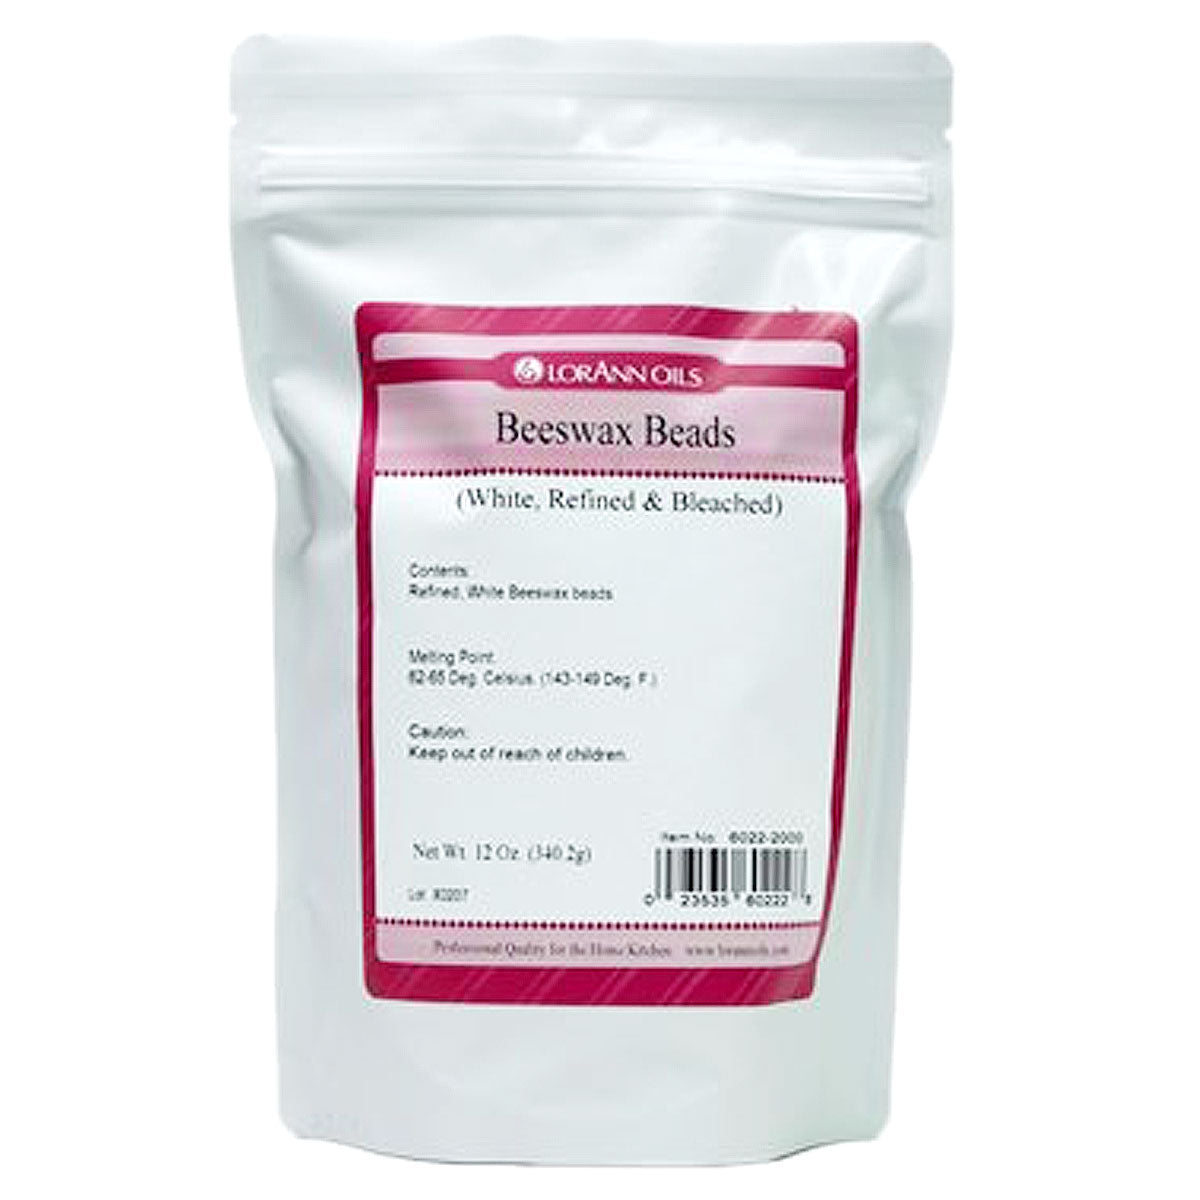 Lorann Beeswax Beads 12oz